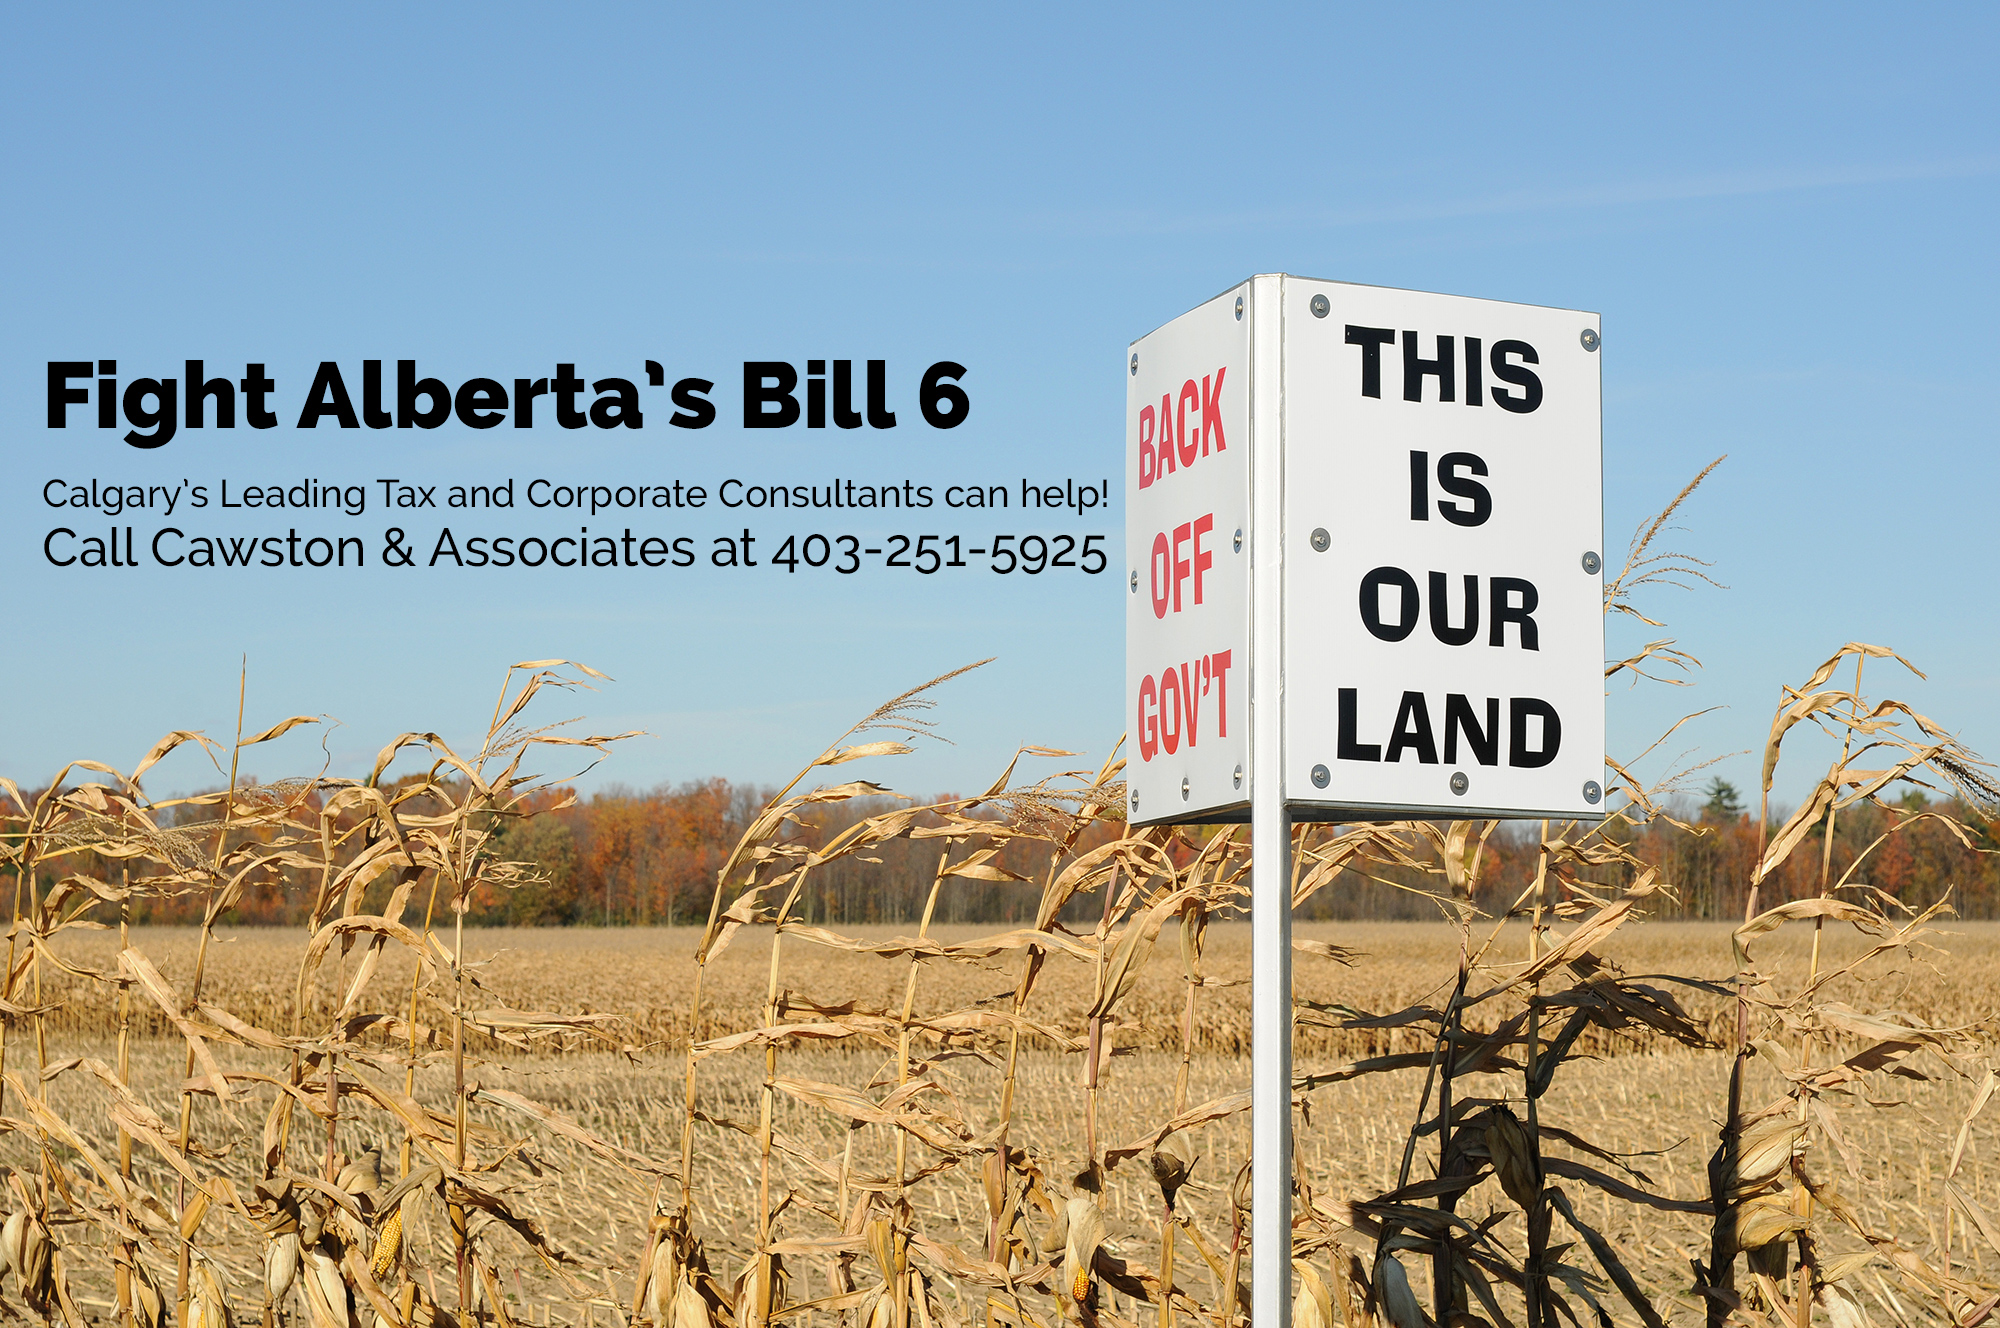 Alberta Bill 6 Farmers Solution